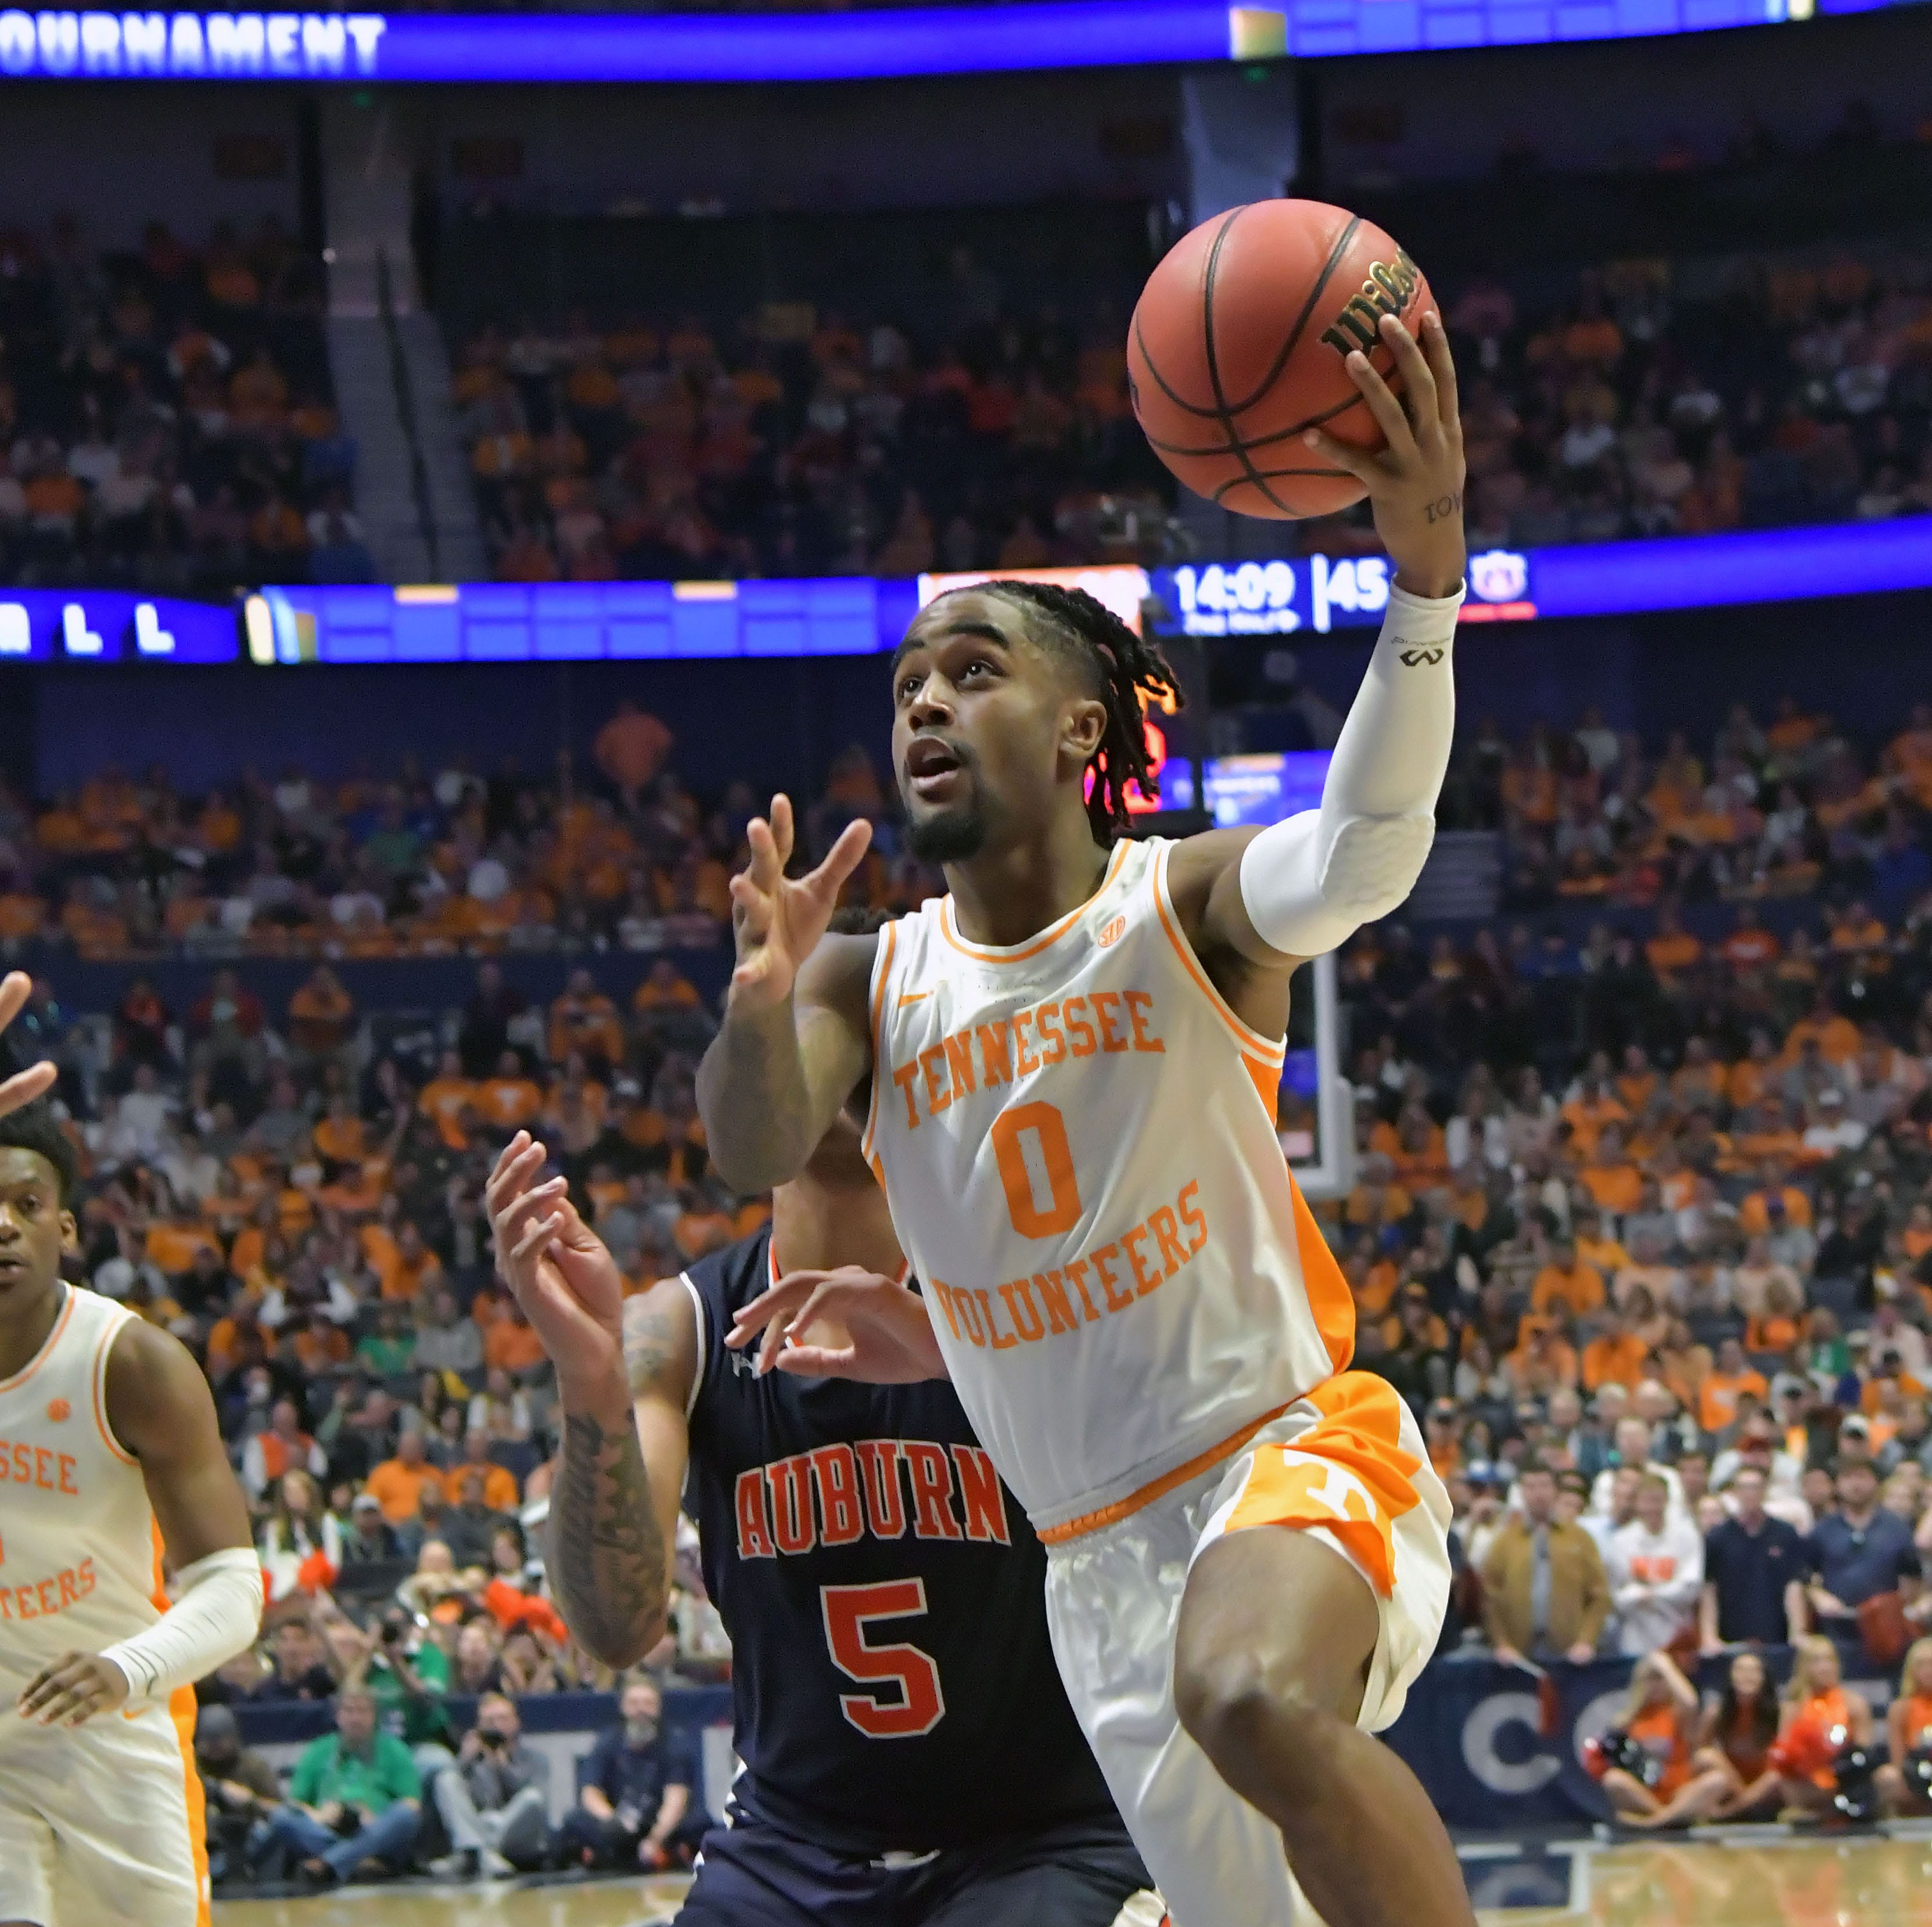 Rexrode: Expect Tennessee Vols' first Final Four, Belmont's first NCAA win